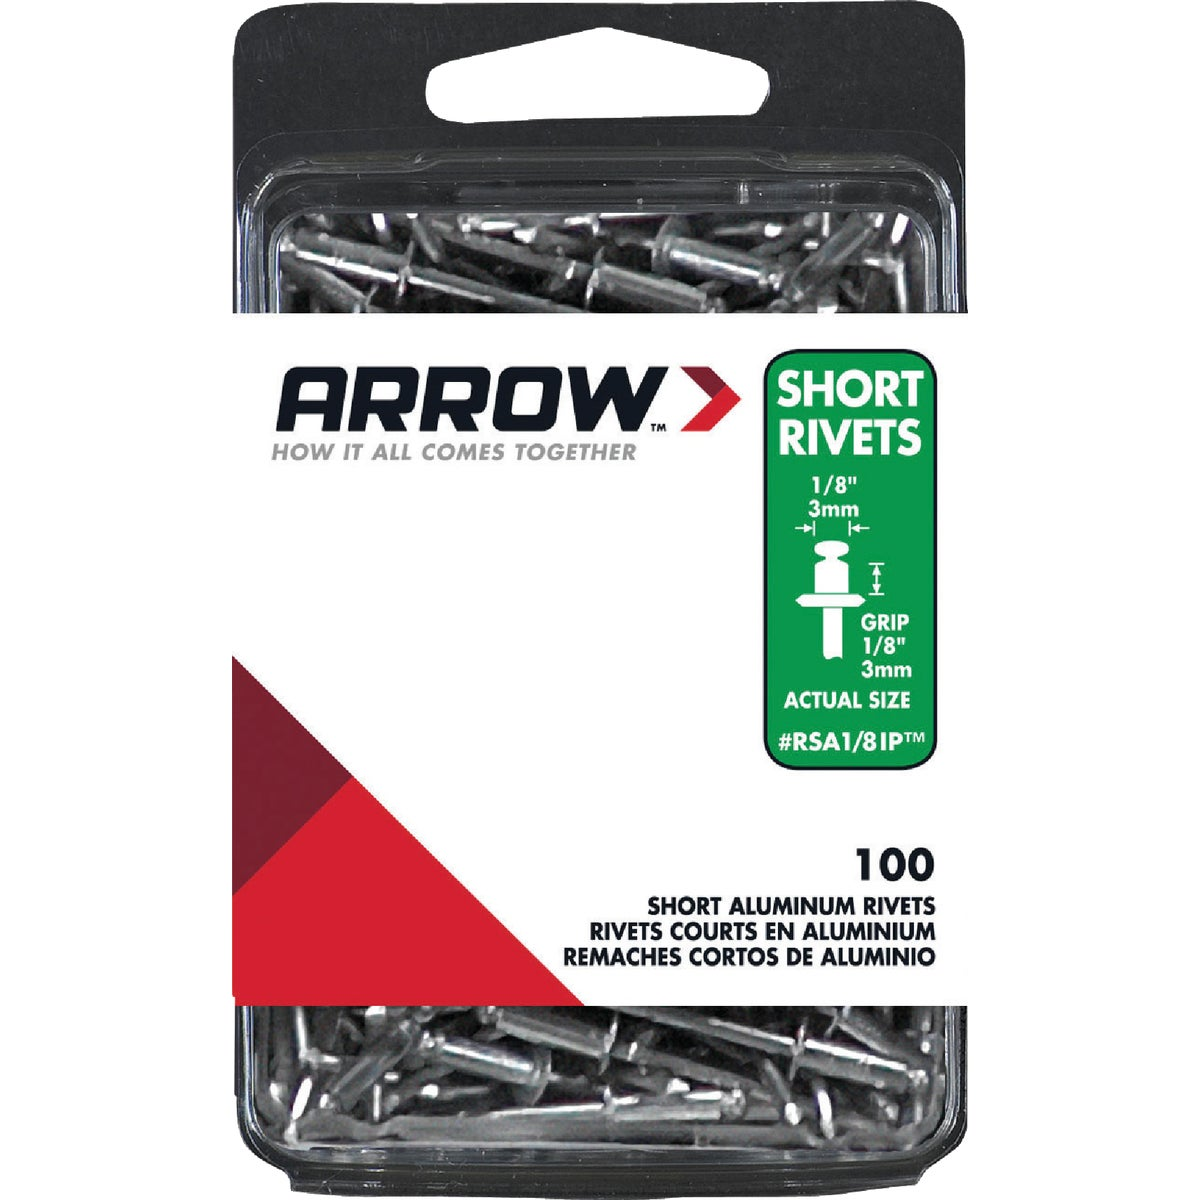 1/8X1/8 ALUM RIVET - RSA1/8IP by Arrow Fastener Co